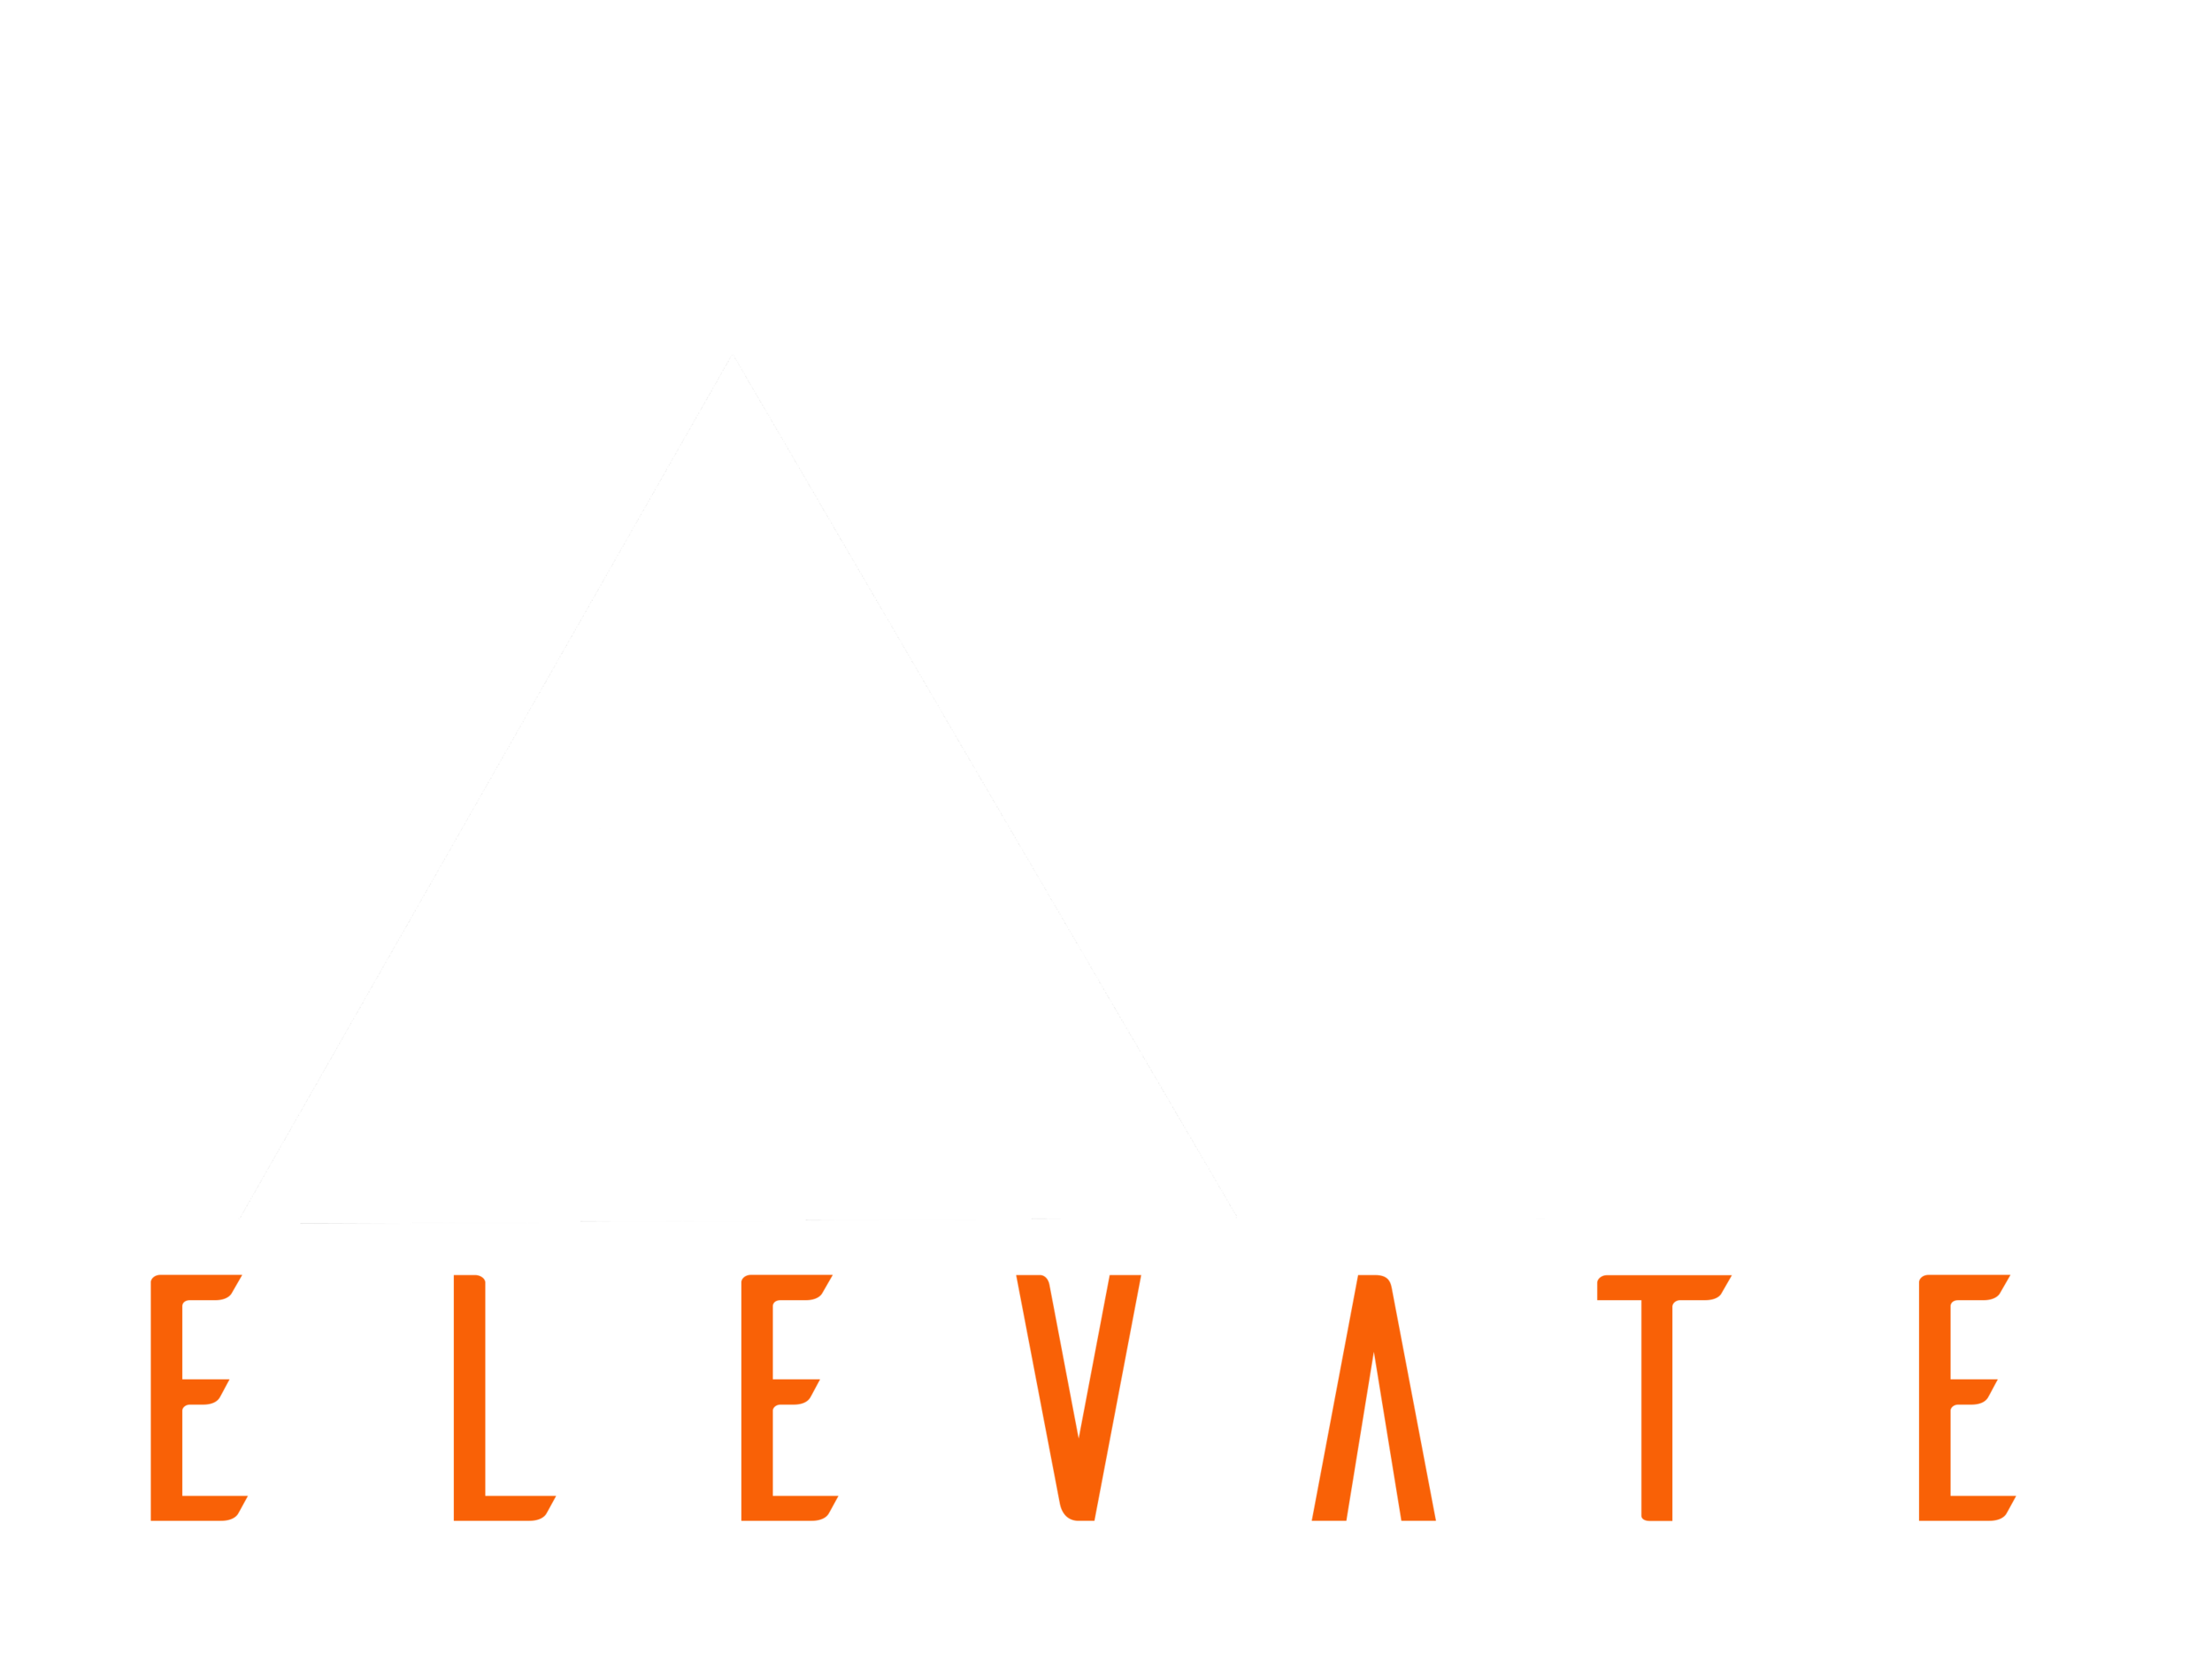 elevate logo - white mountains.png